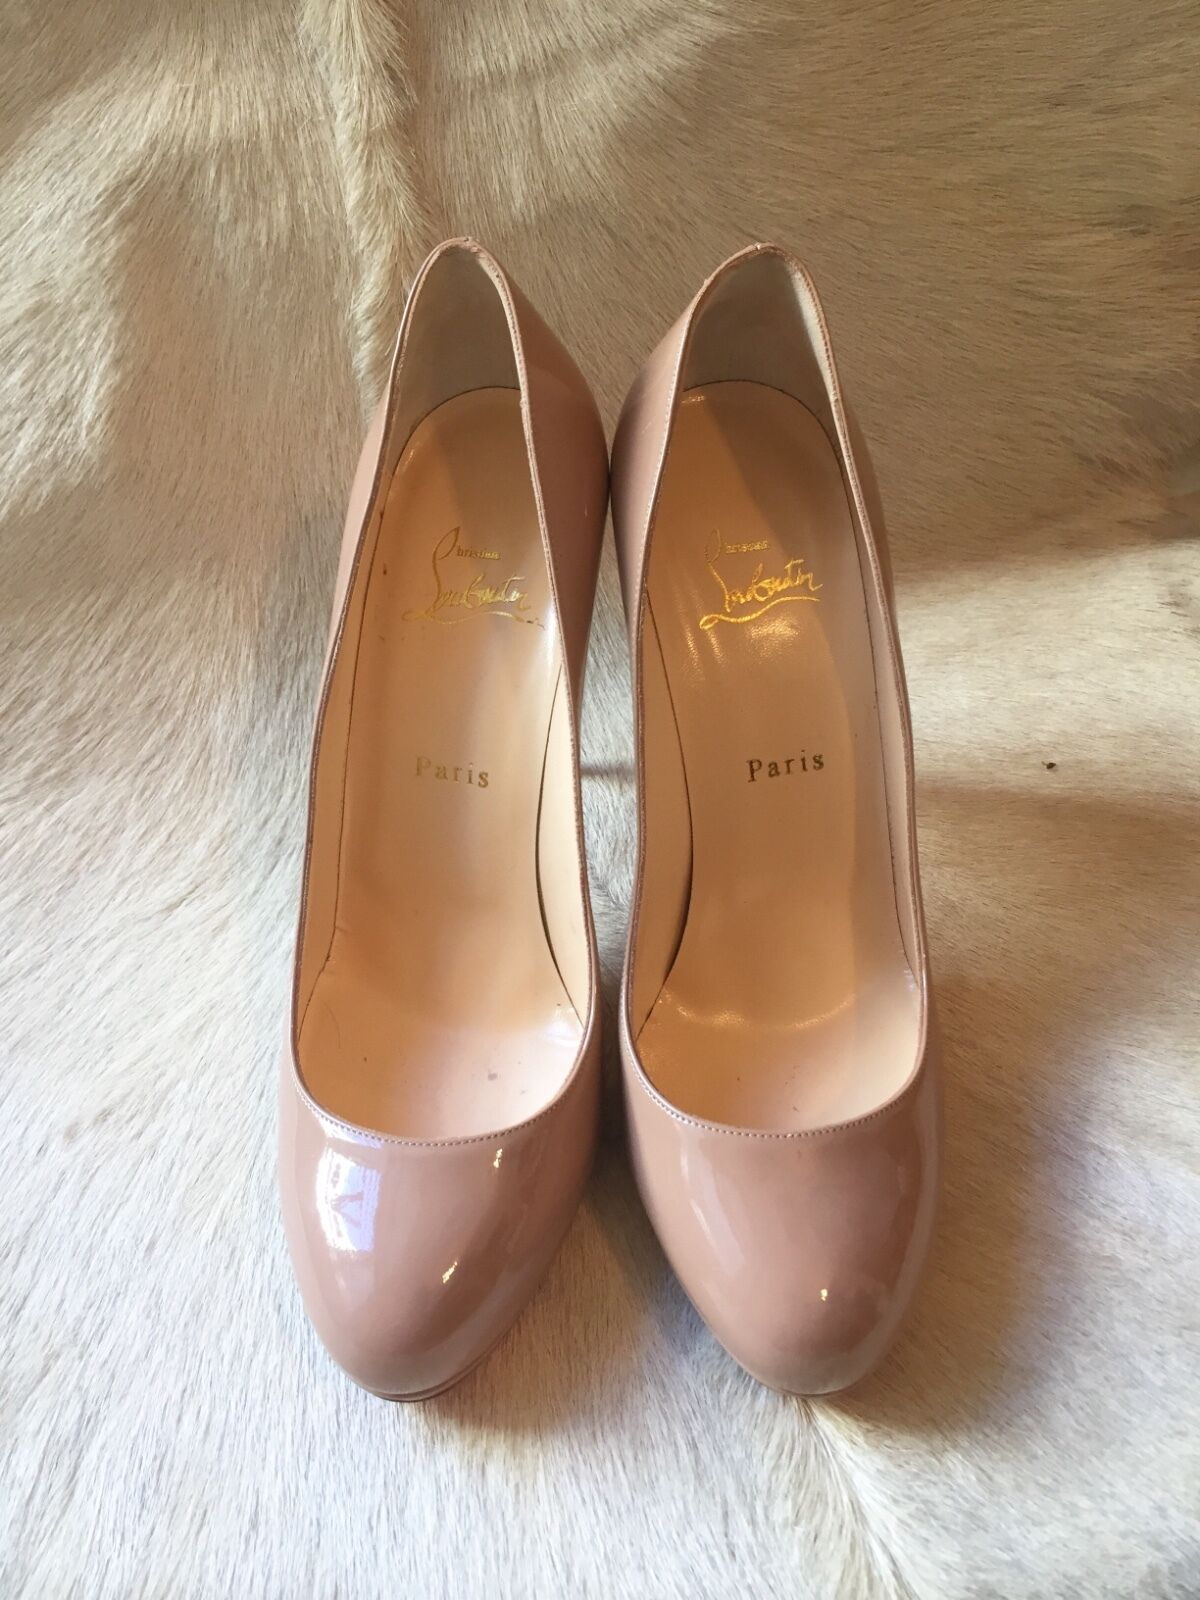 Irresistible Christian Louboutin Nude New Simple 120 Patent  Heels Leder Heels  40 NEW fb2cd3